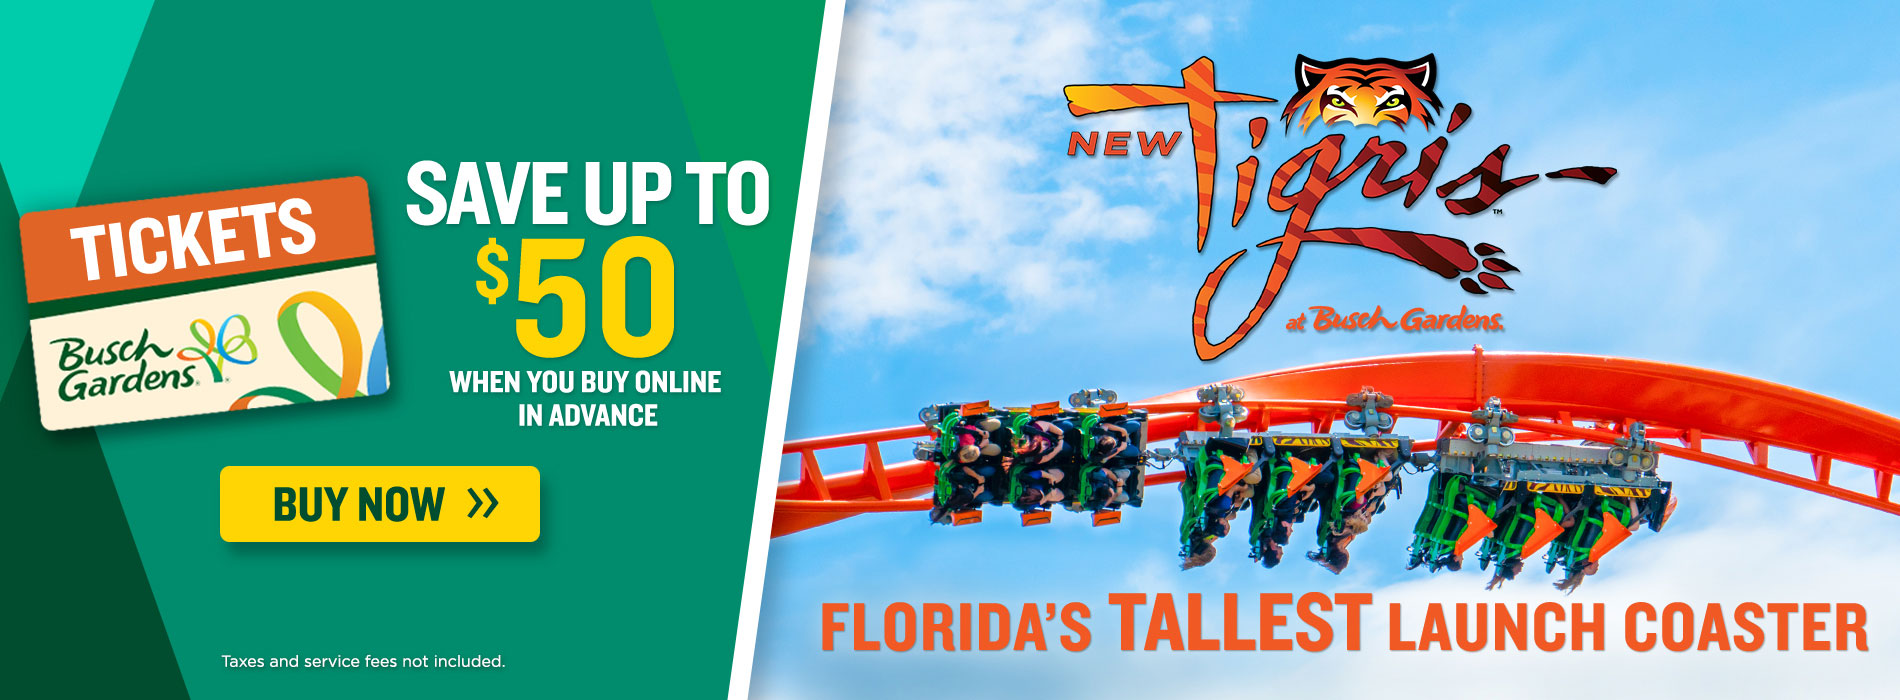 Save up to $100 on Busch Gardens Tampa Bay tickets and take on Tigris, Florida's Tallest Launch Coaster